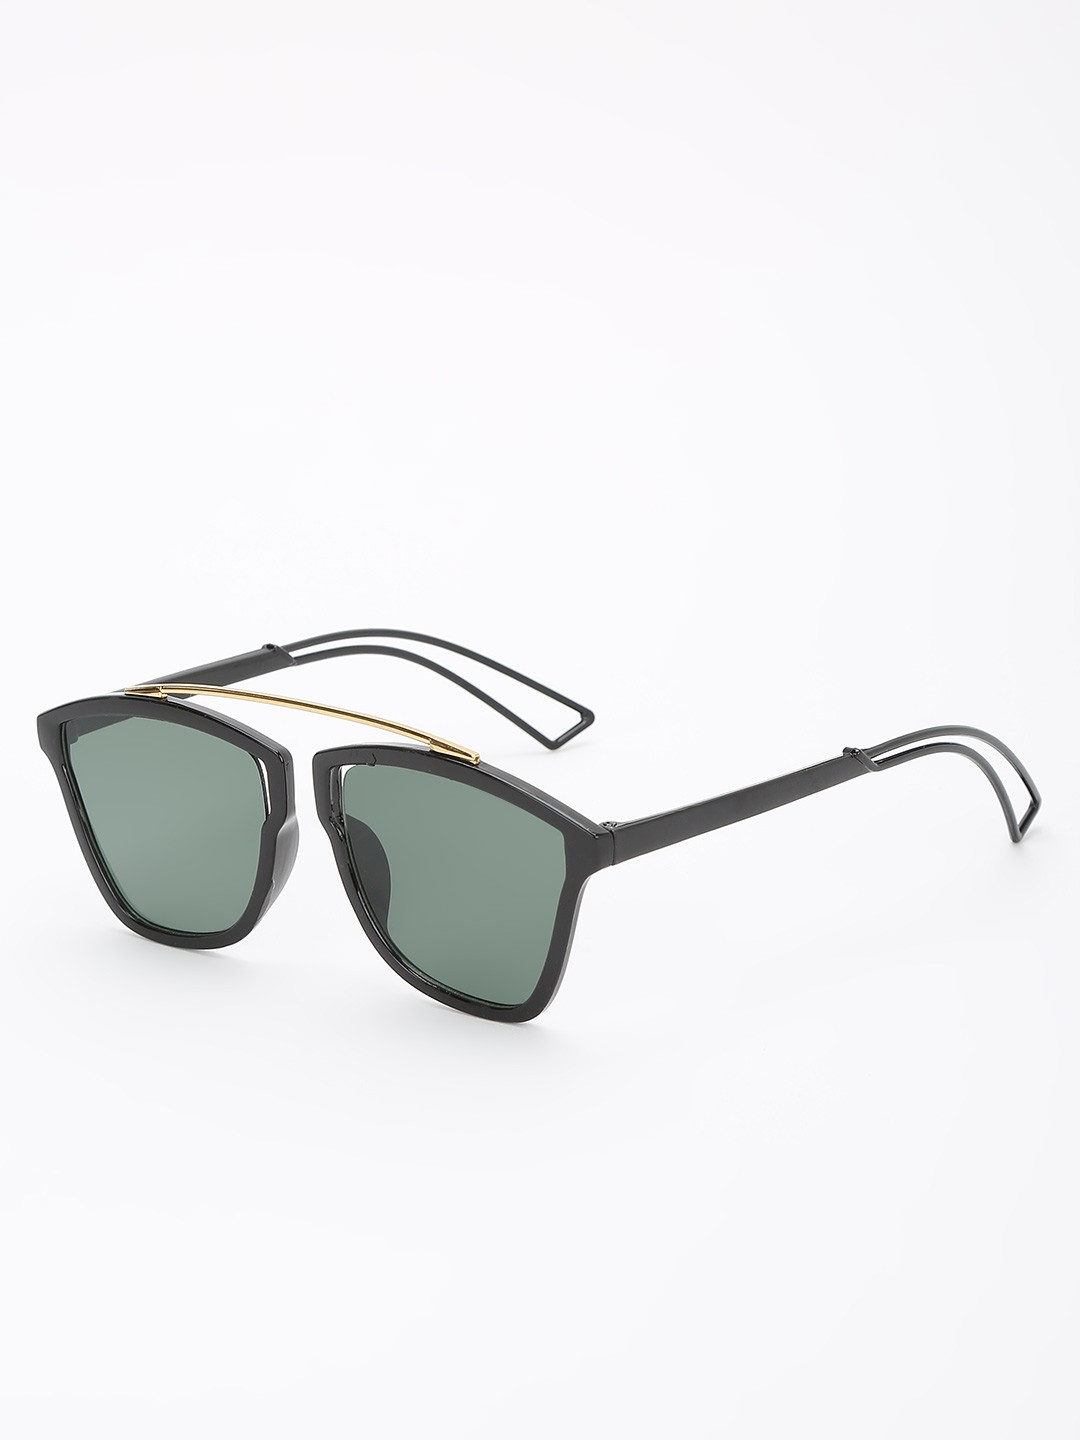 KOOVS Green Tinted Lens Square Sunglasses 1